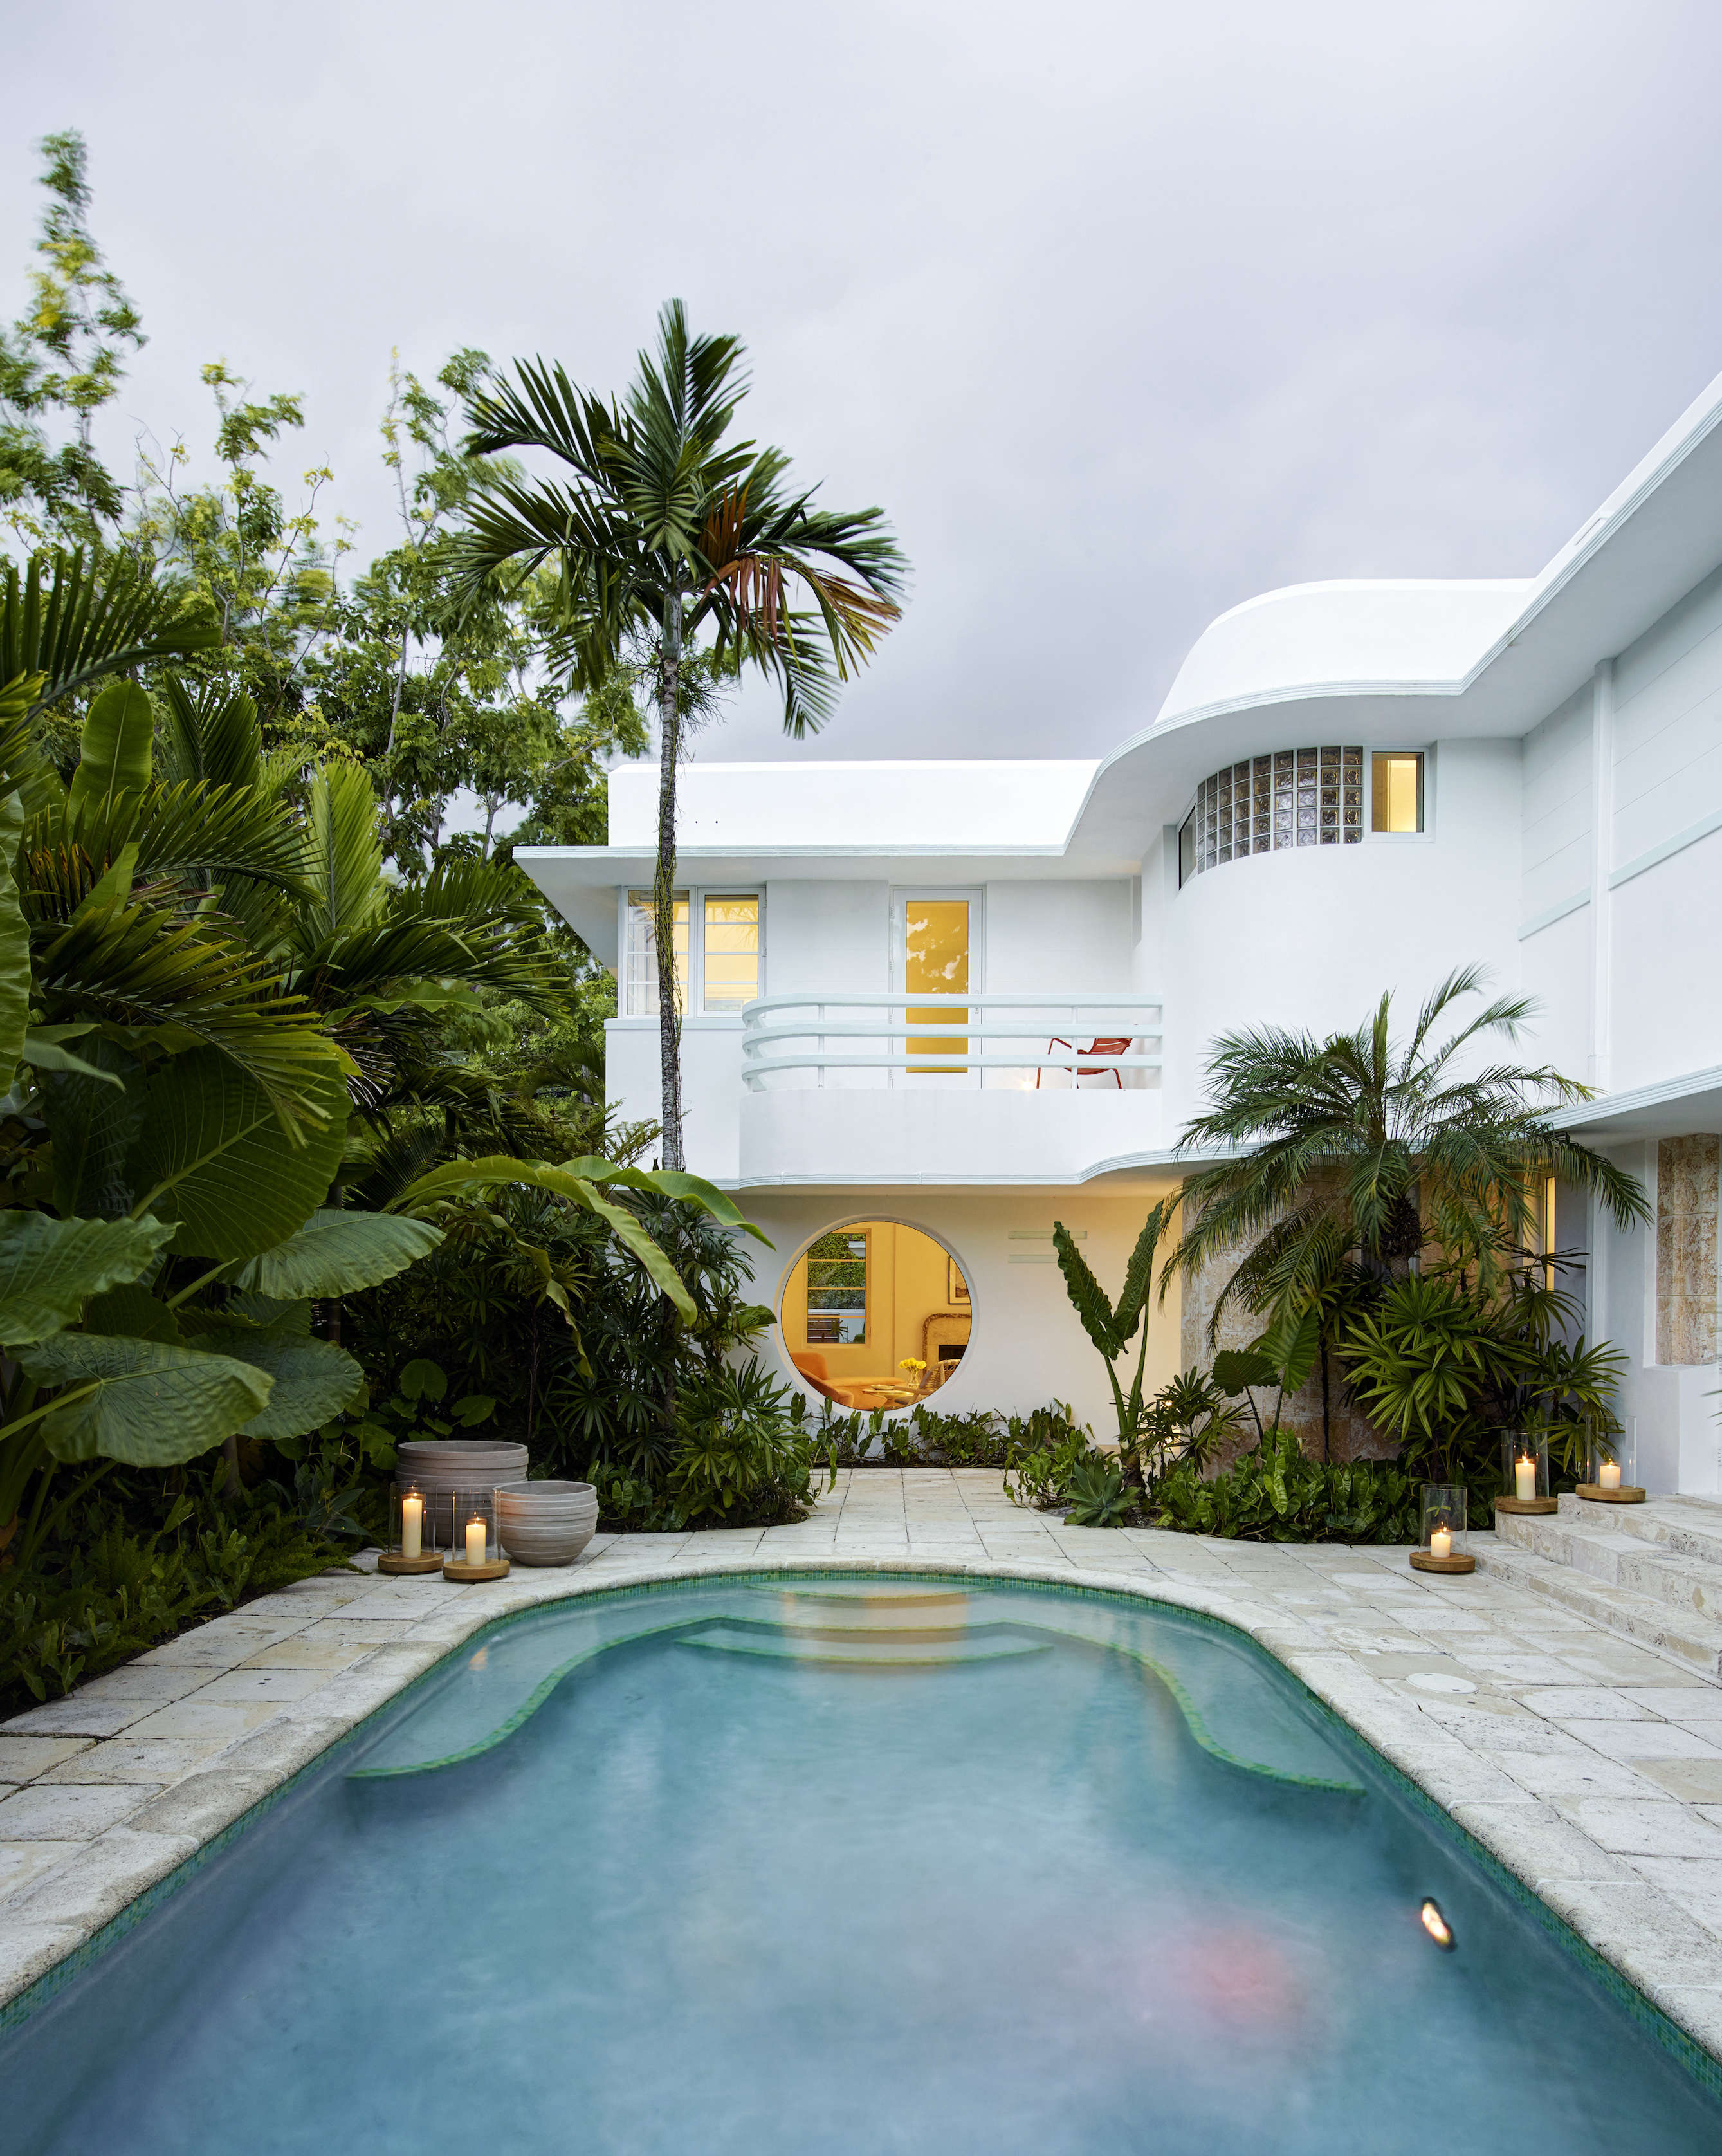 Vintage Above The original Deco detailing extends to the pool unow lushly landscaped